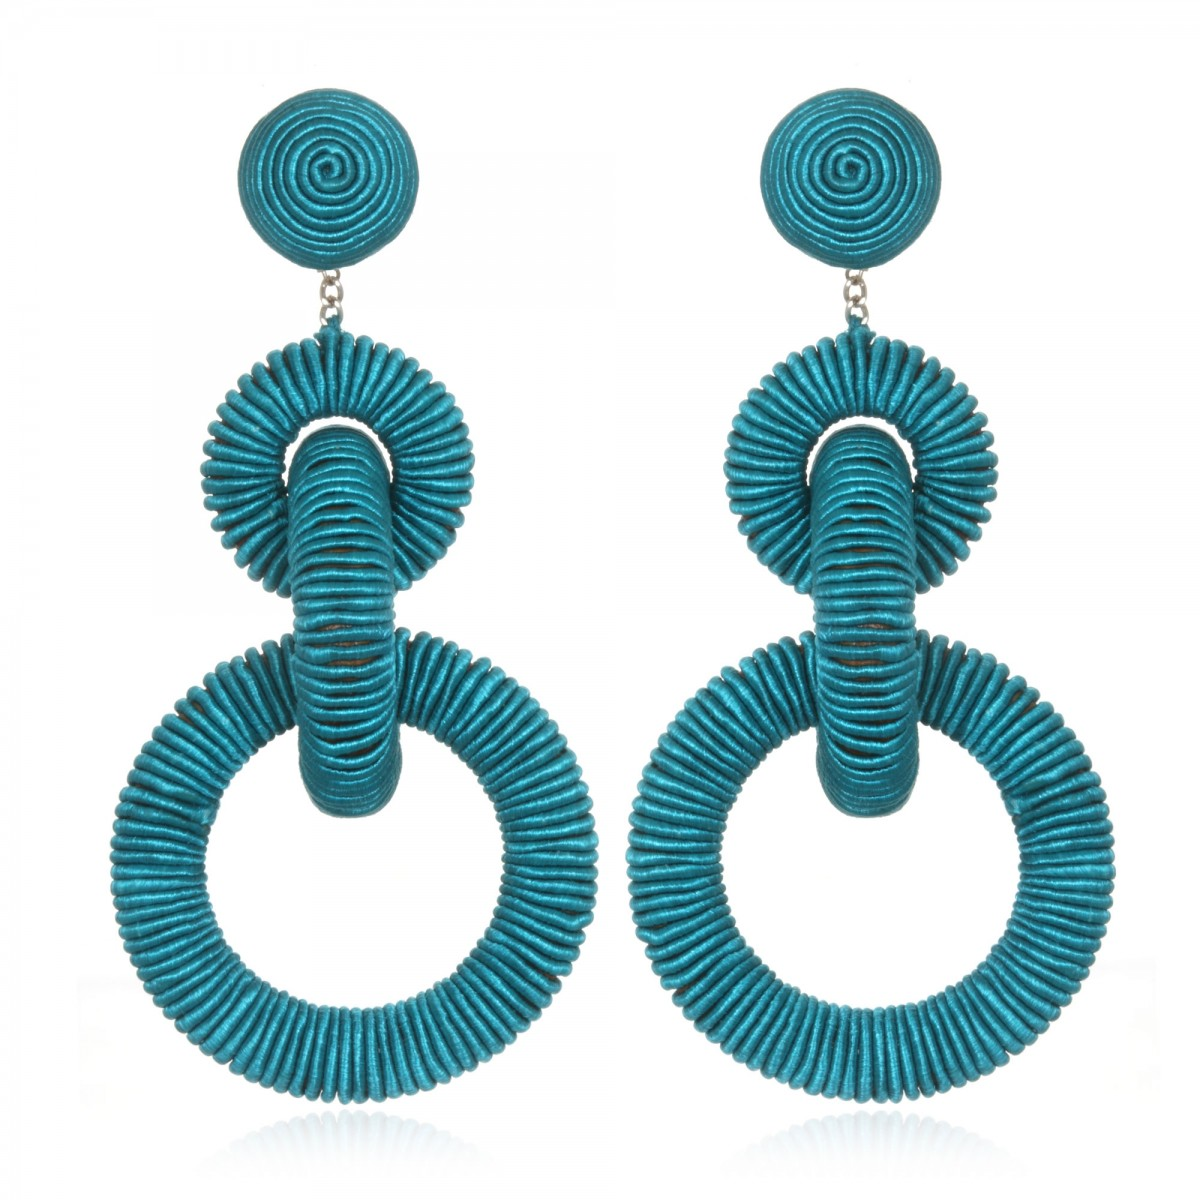 Turquoise Triple Tier Earrings by SUZANNA DAI